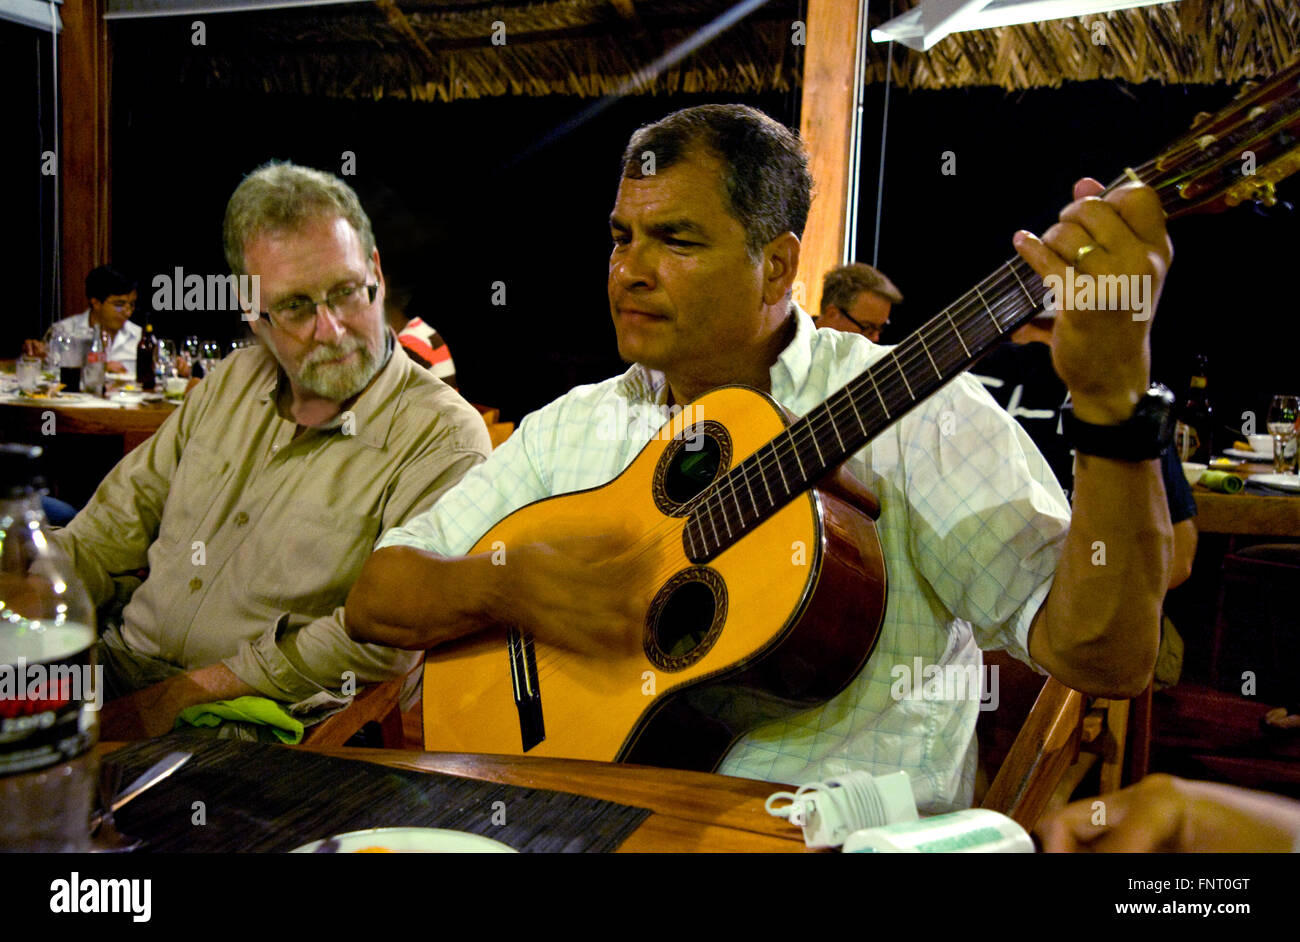 President Rafael Correa of Ecuador serenades show host Peter Greenberg and his crew during dinner after day of filming - Stock Image